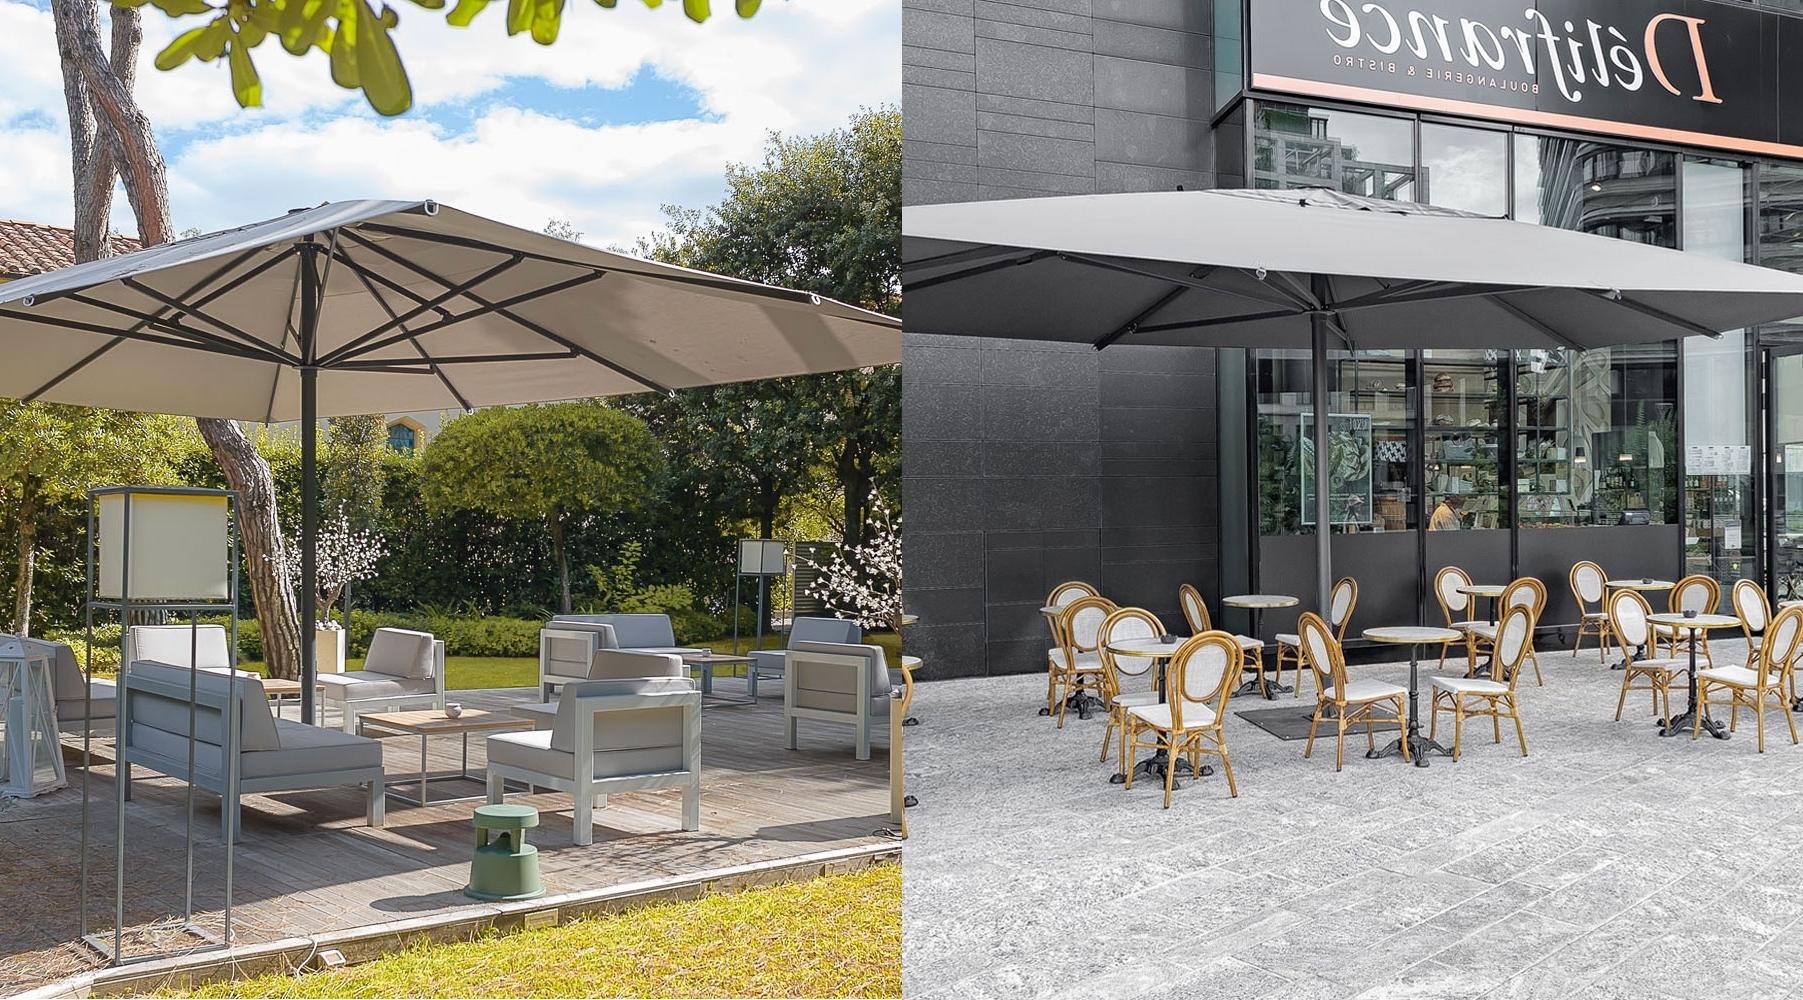 Well Liked Expensive Patio Umbrellas With The Ultimate Guide To Choosing The Best Commercial Outdoor Umbrella (View 19 of 20)